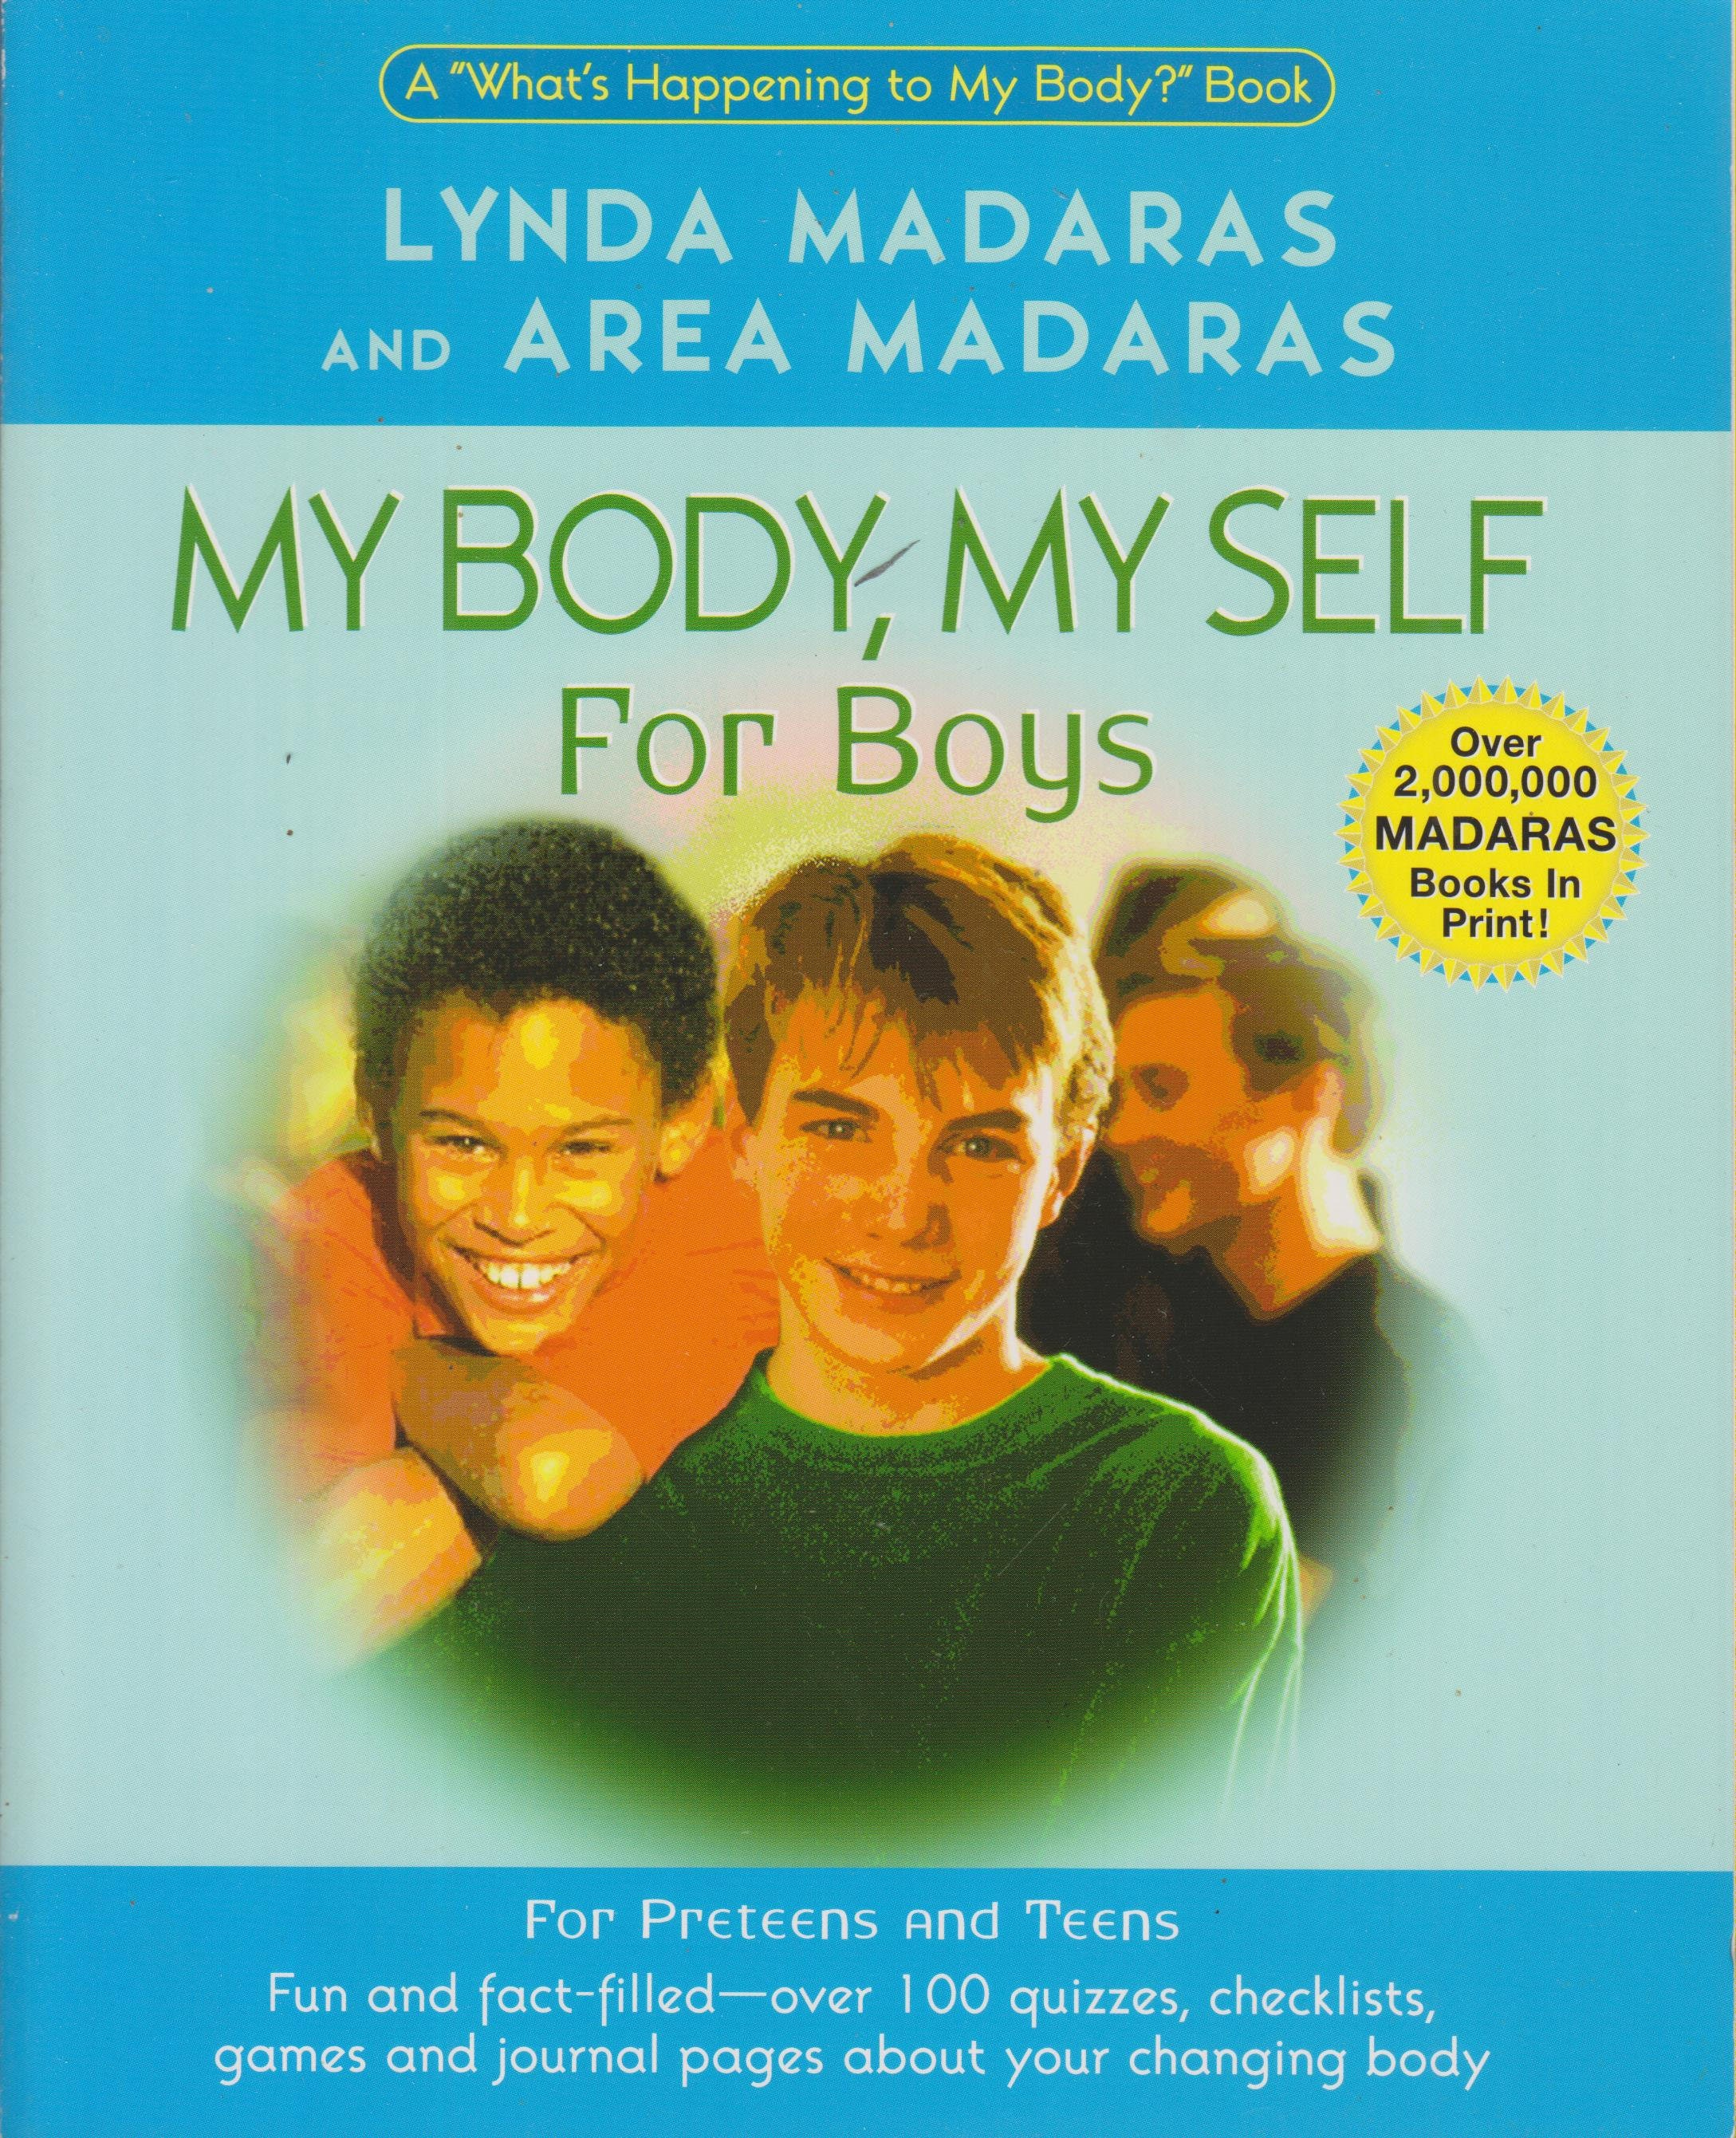 My Body, My Self for Boys: A What's Happening to My Body